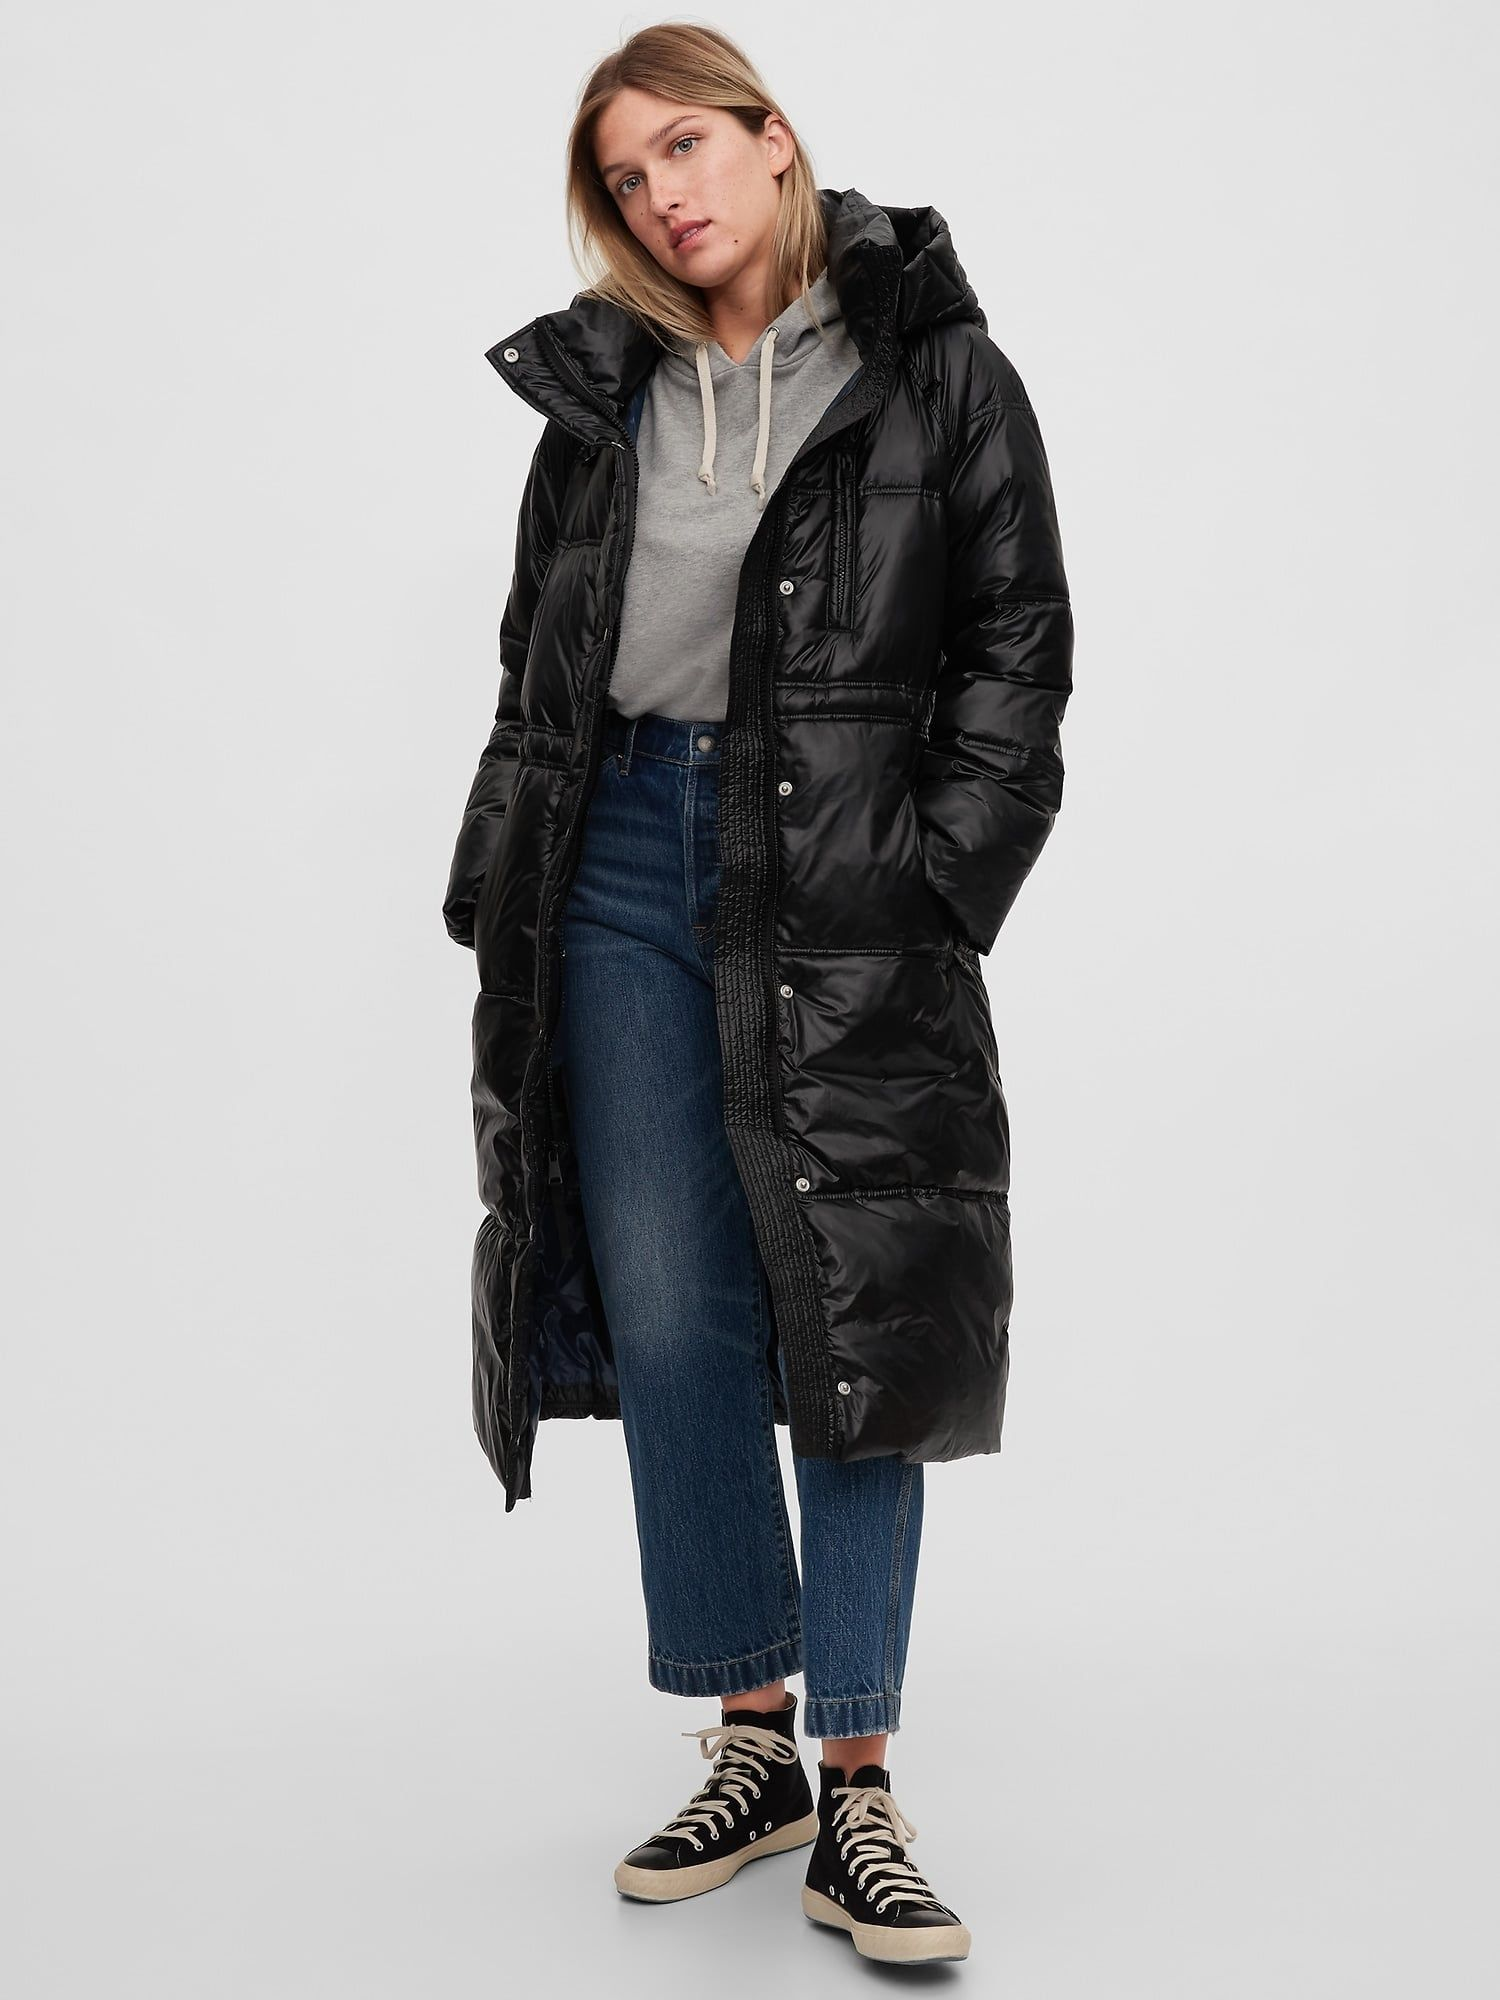 Gap Has So Many Cute Coats And Jackets Right Now It S Hard To Pick Just One Long Puffer Coat Puffer Coat Long Puffer [ 2000 x 1500 Pixel ]